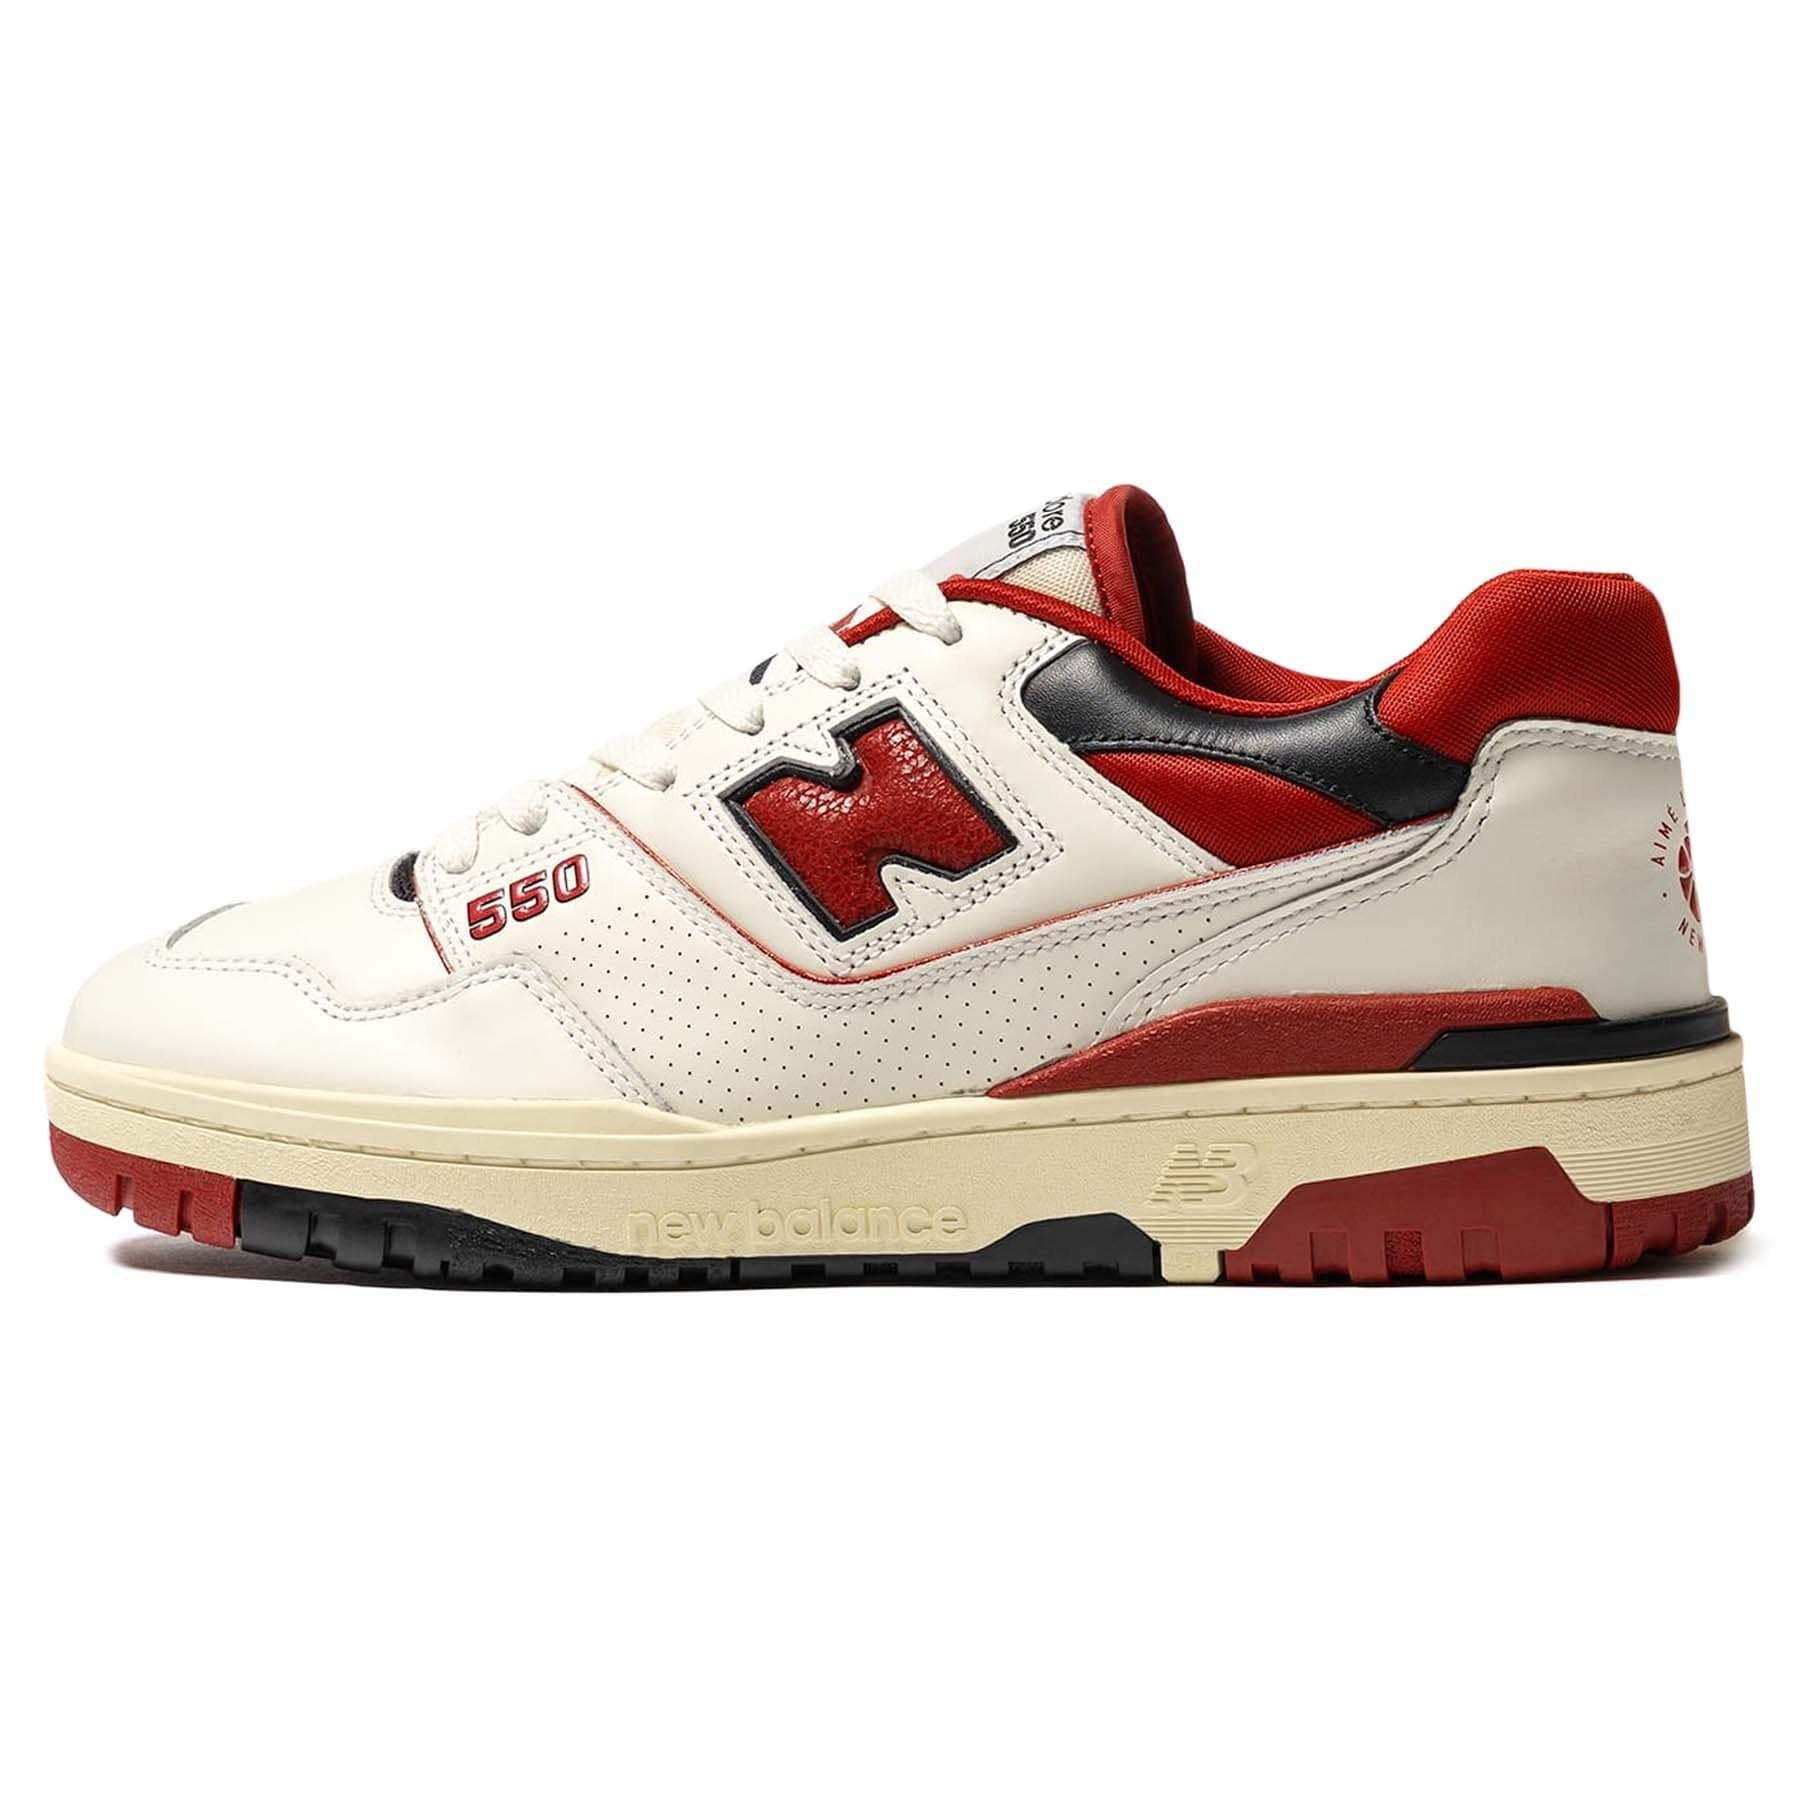 red new balance trainers size 6